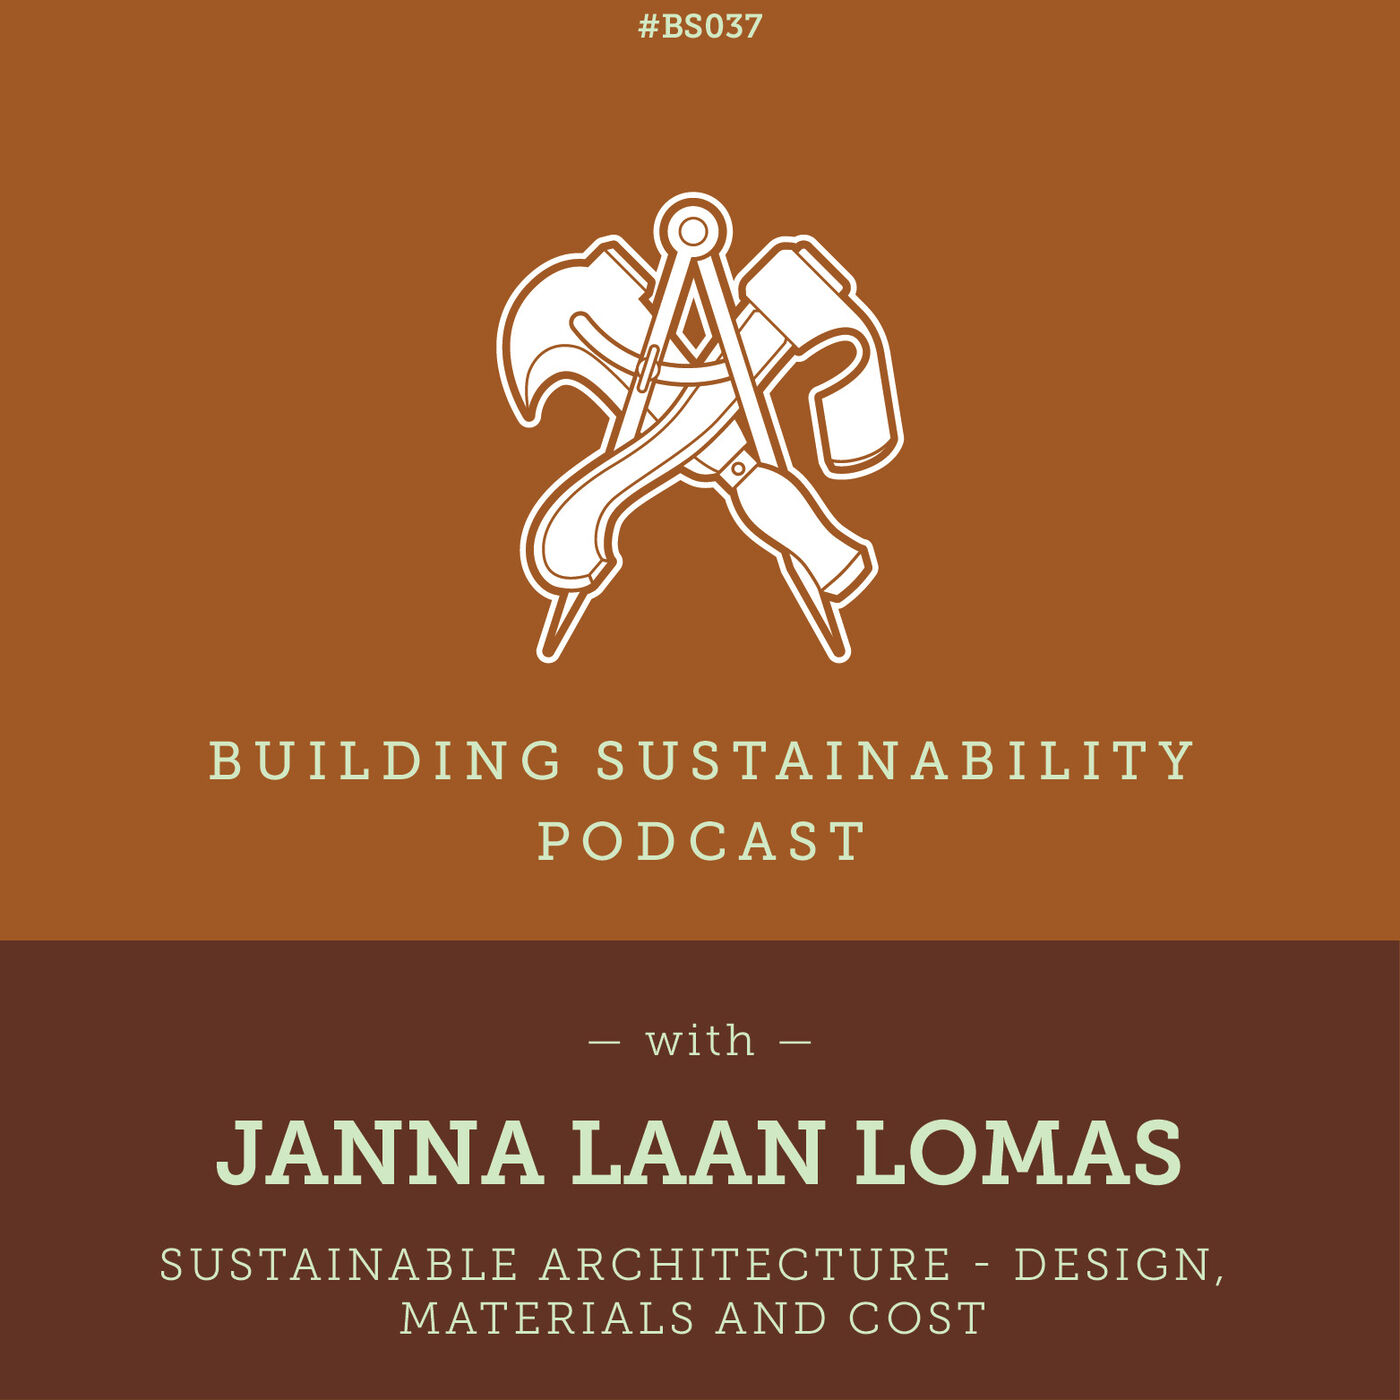 Sustainable architecture - Design, Materials and Cost - Janna Laan Lomas